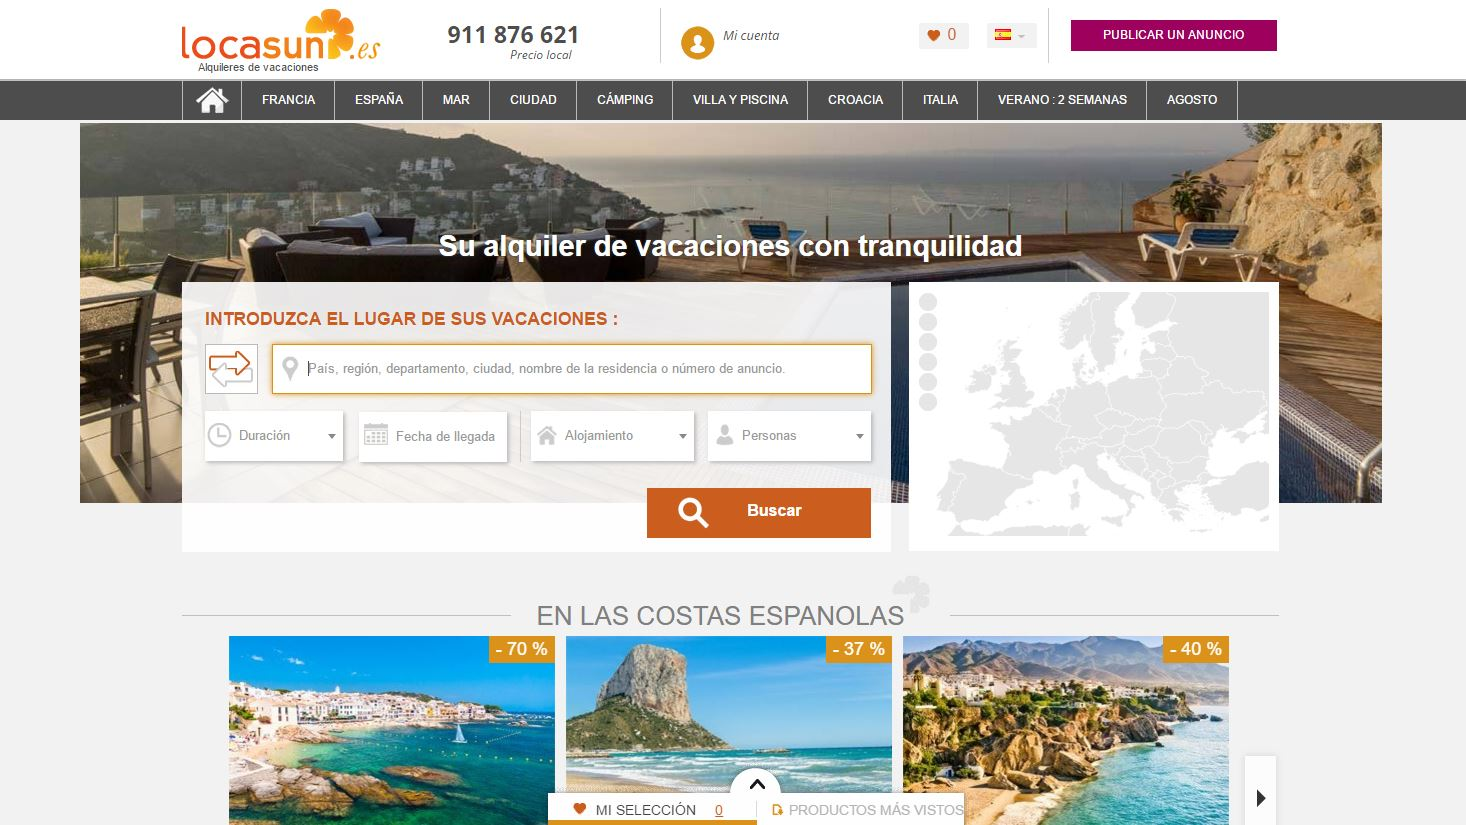 Locasun-website-es